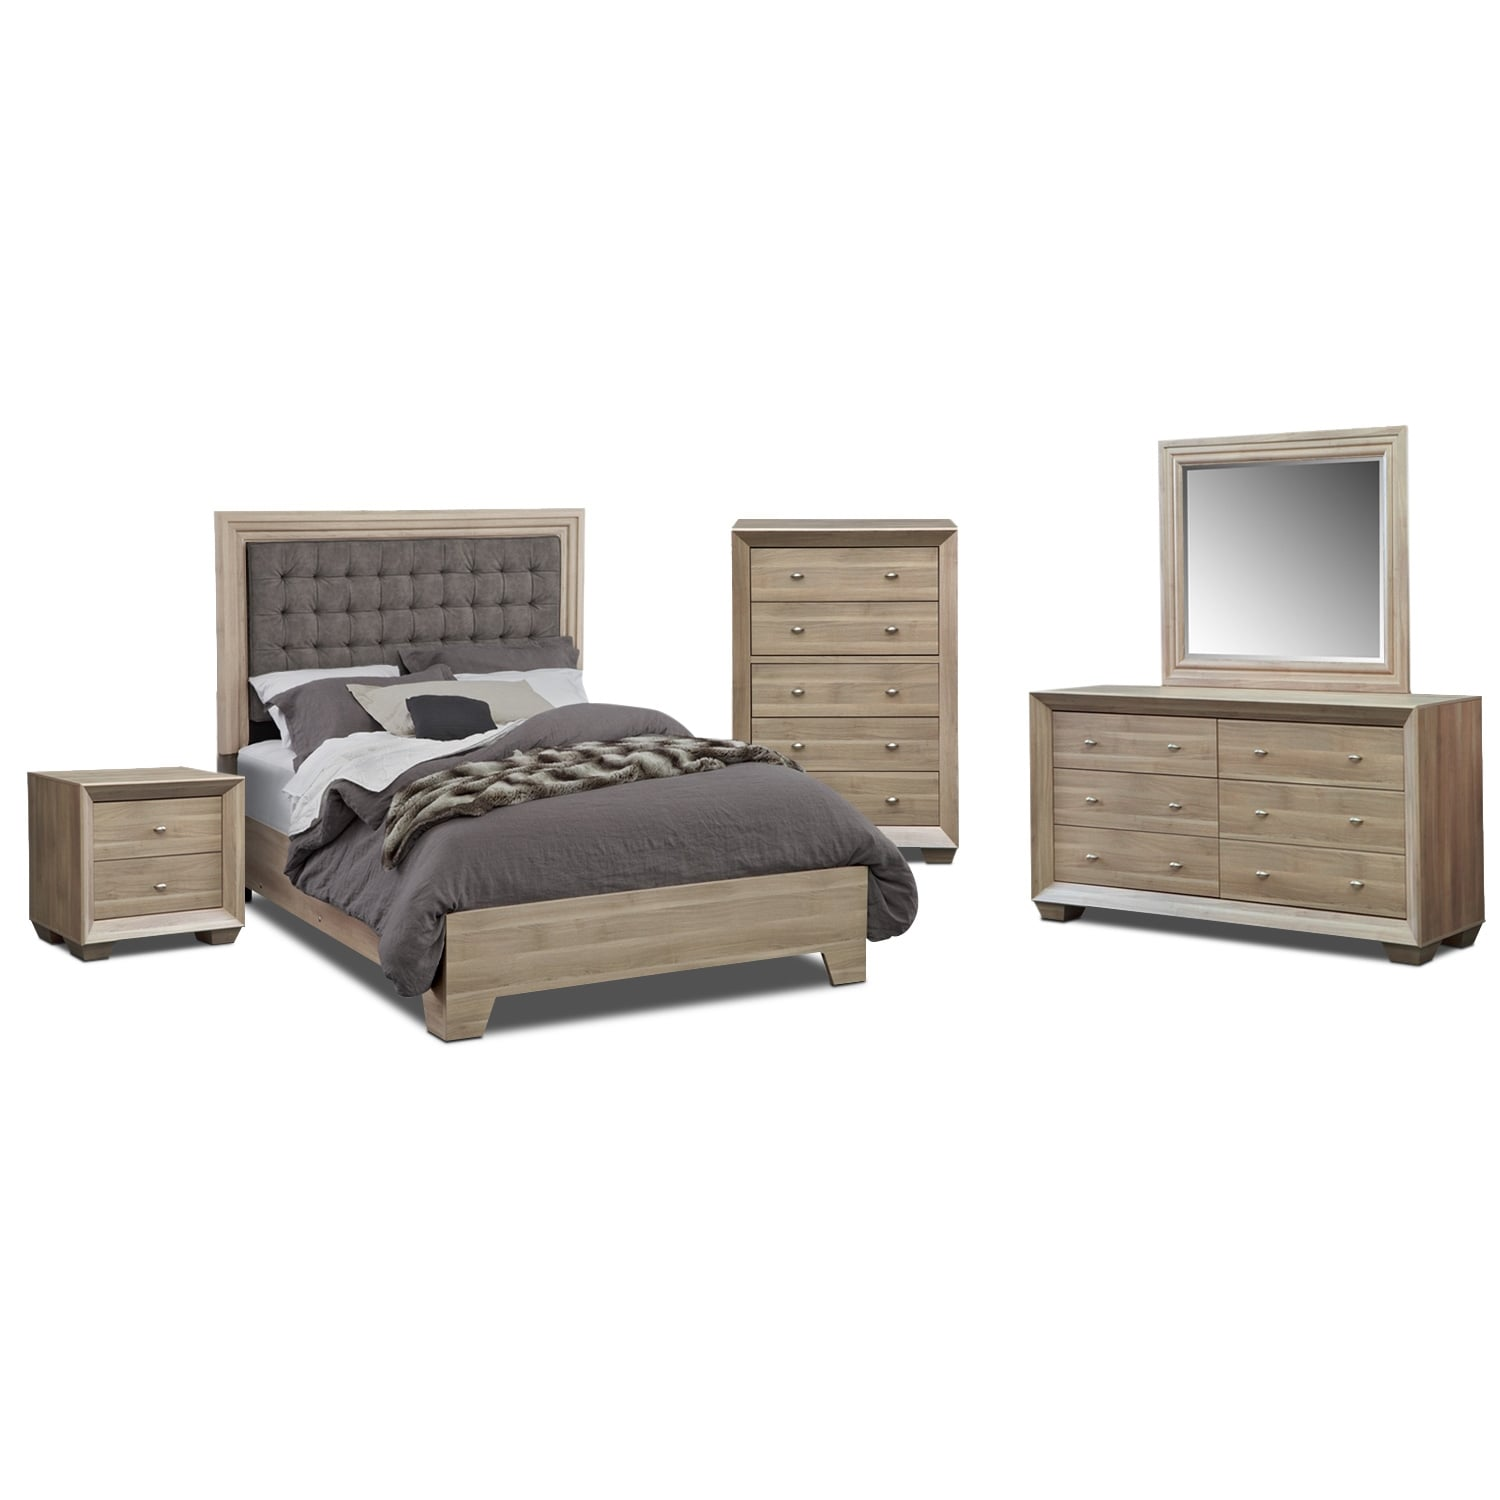 Bedroom Furniture - Siena 7 Pc. King Bedroom